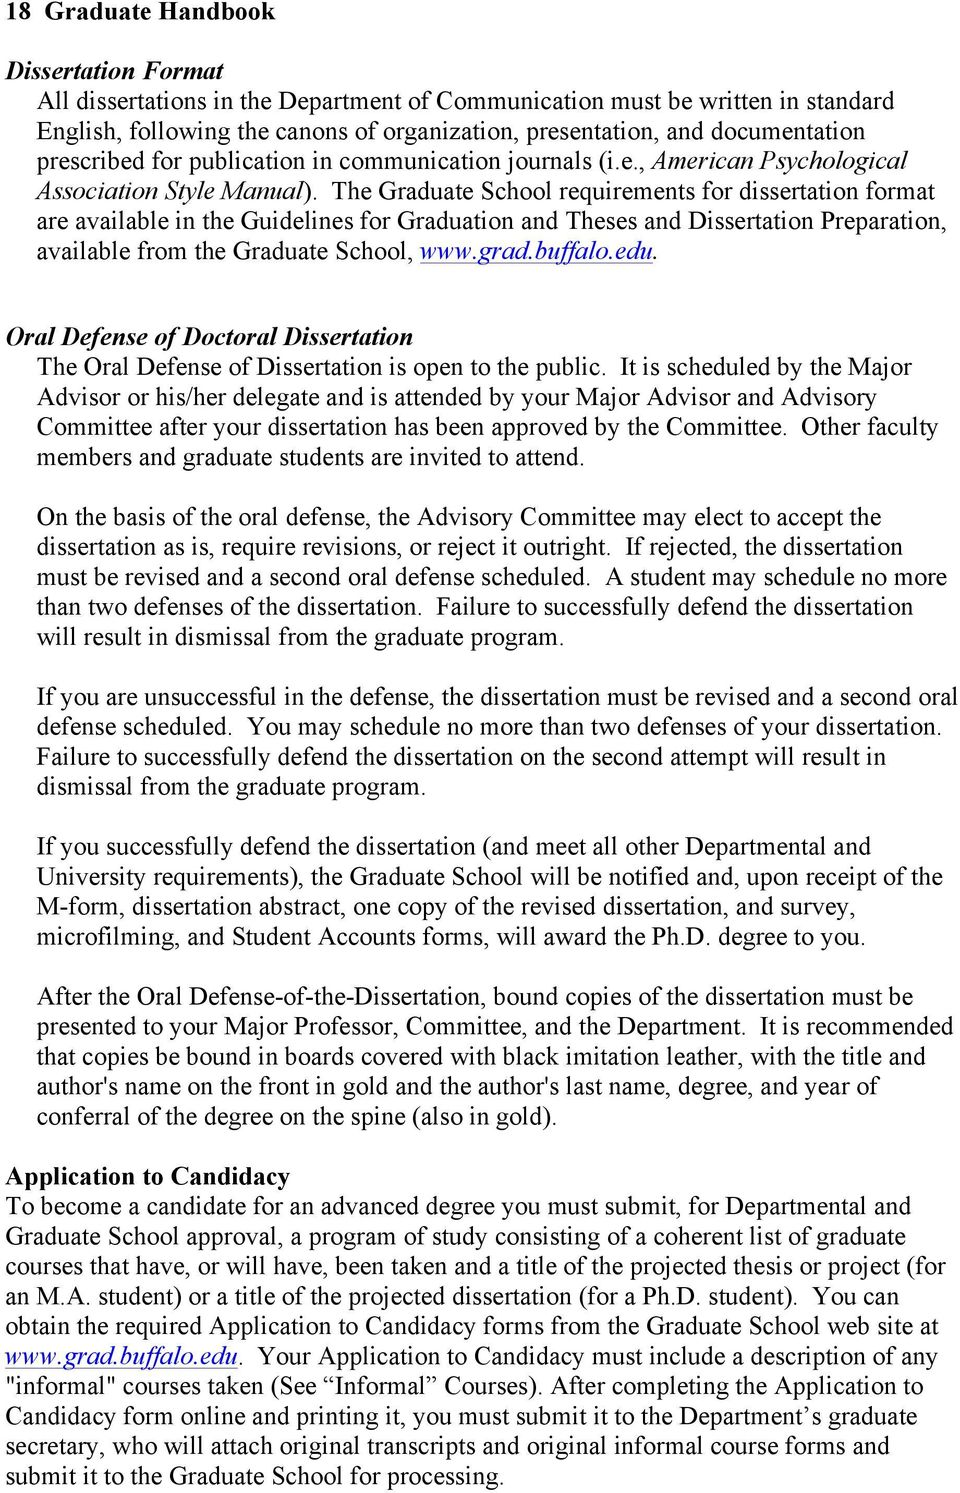 The Graduate School requirements for dissertation format are available in the Guidelines for Graduation and Theses and Dissertation Preparation, available from the Graduate School, www.grad.buffalo.